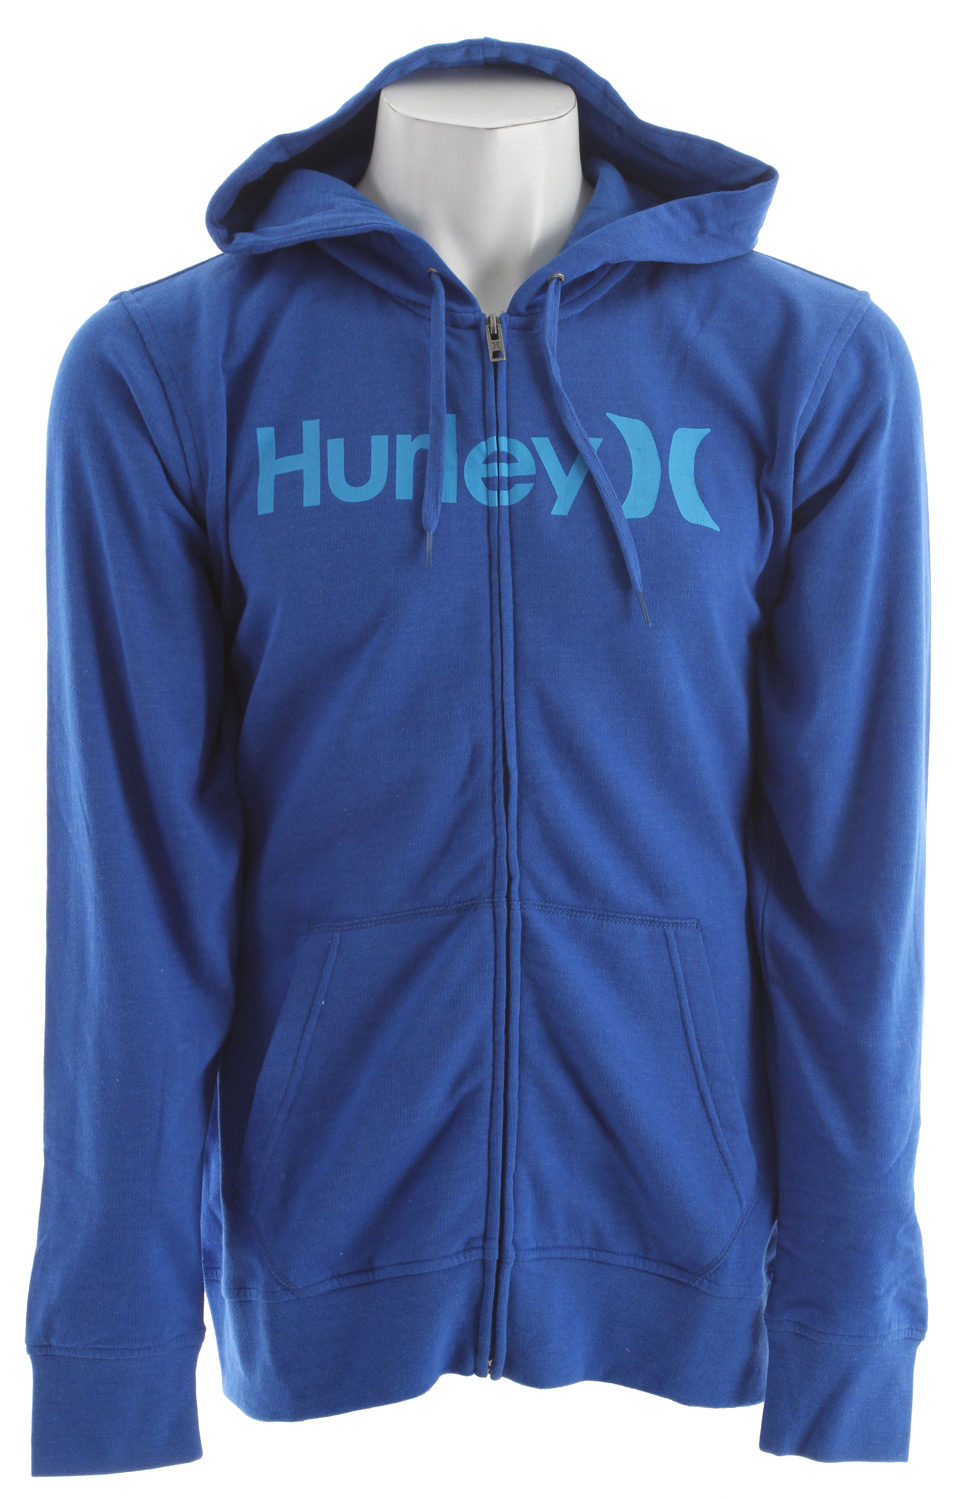 Surf Key Features of the Hurley One & Only Zip Hoodie: Zip Fleece 220gm Fleece; 60% Cotton/40% Polyester Woven icon loop label and soft-hand print. - $34.95